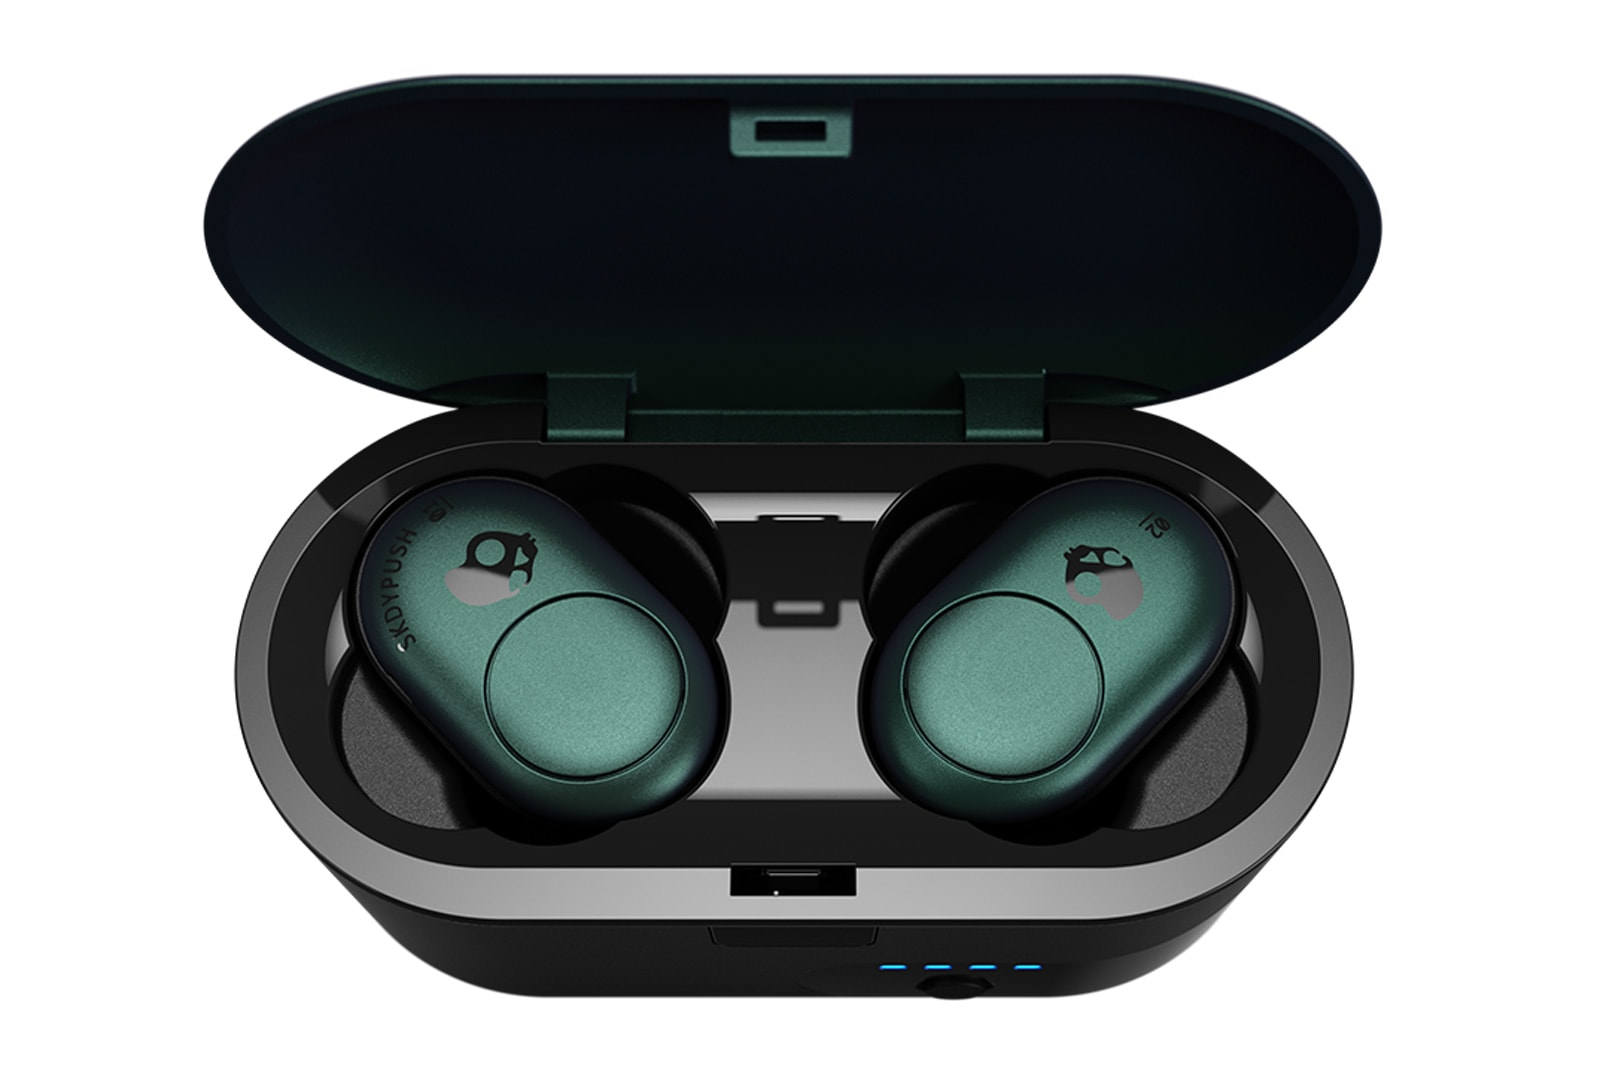 Skullcandy Push wireless earbuds in their case